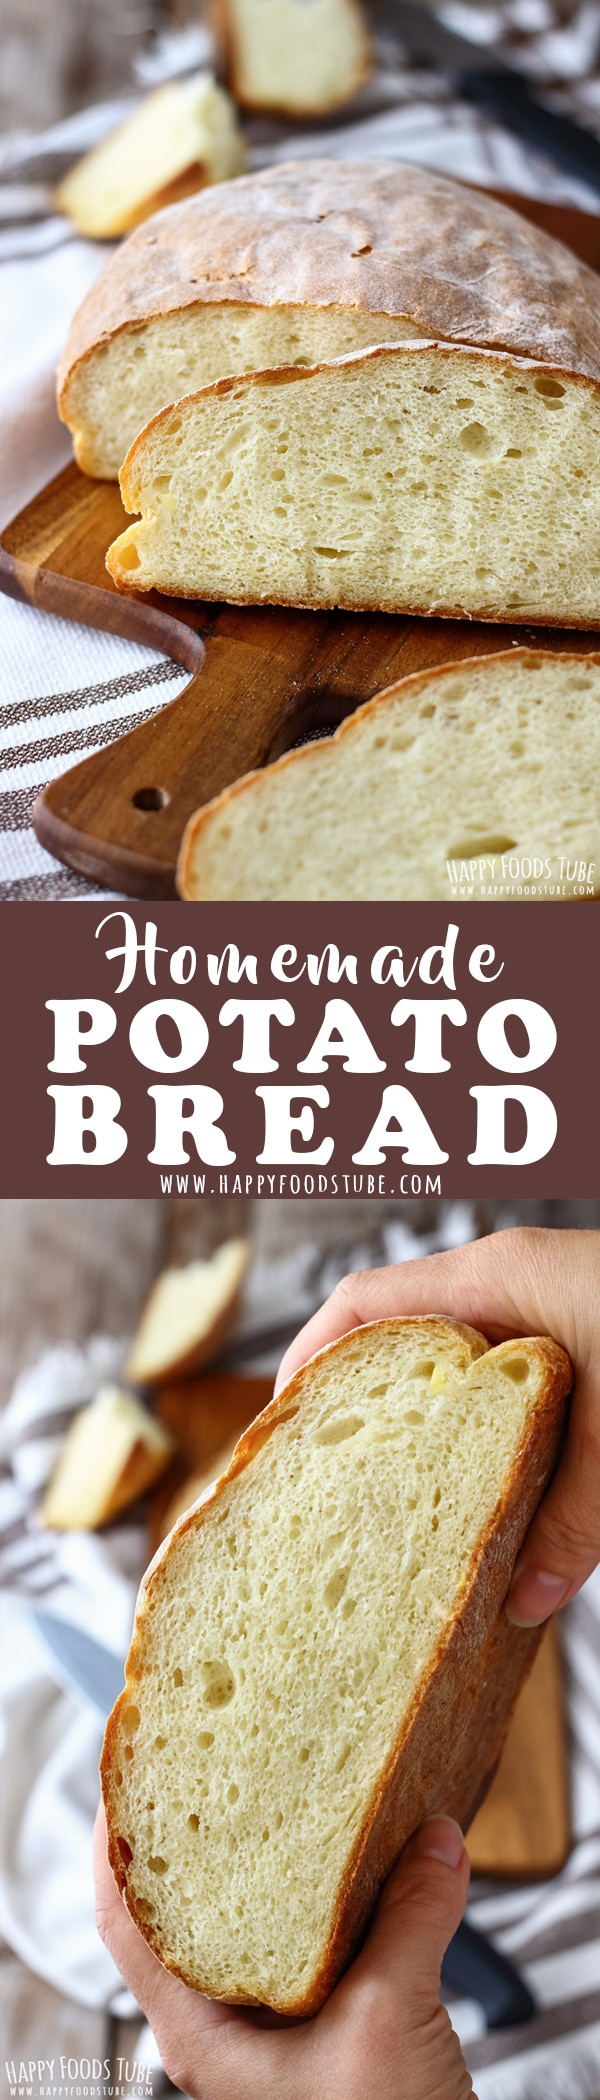 This homemade potato bread is light, fluffy and stays soft for several days. It's a foolproof bread recipe that contains no eggs, milk or butter. #homemade #potatobread #mashedpotato #bakingbread #breadrecipe #rustic #oldfashioned #howtomake